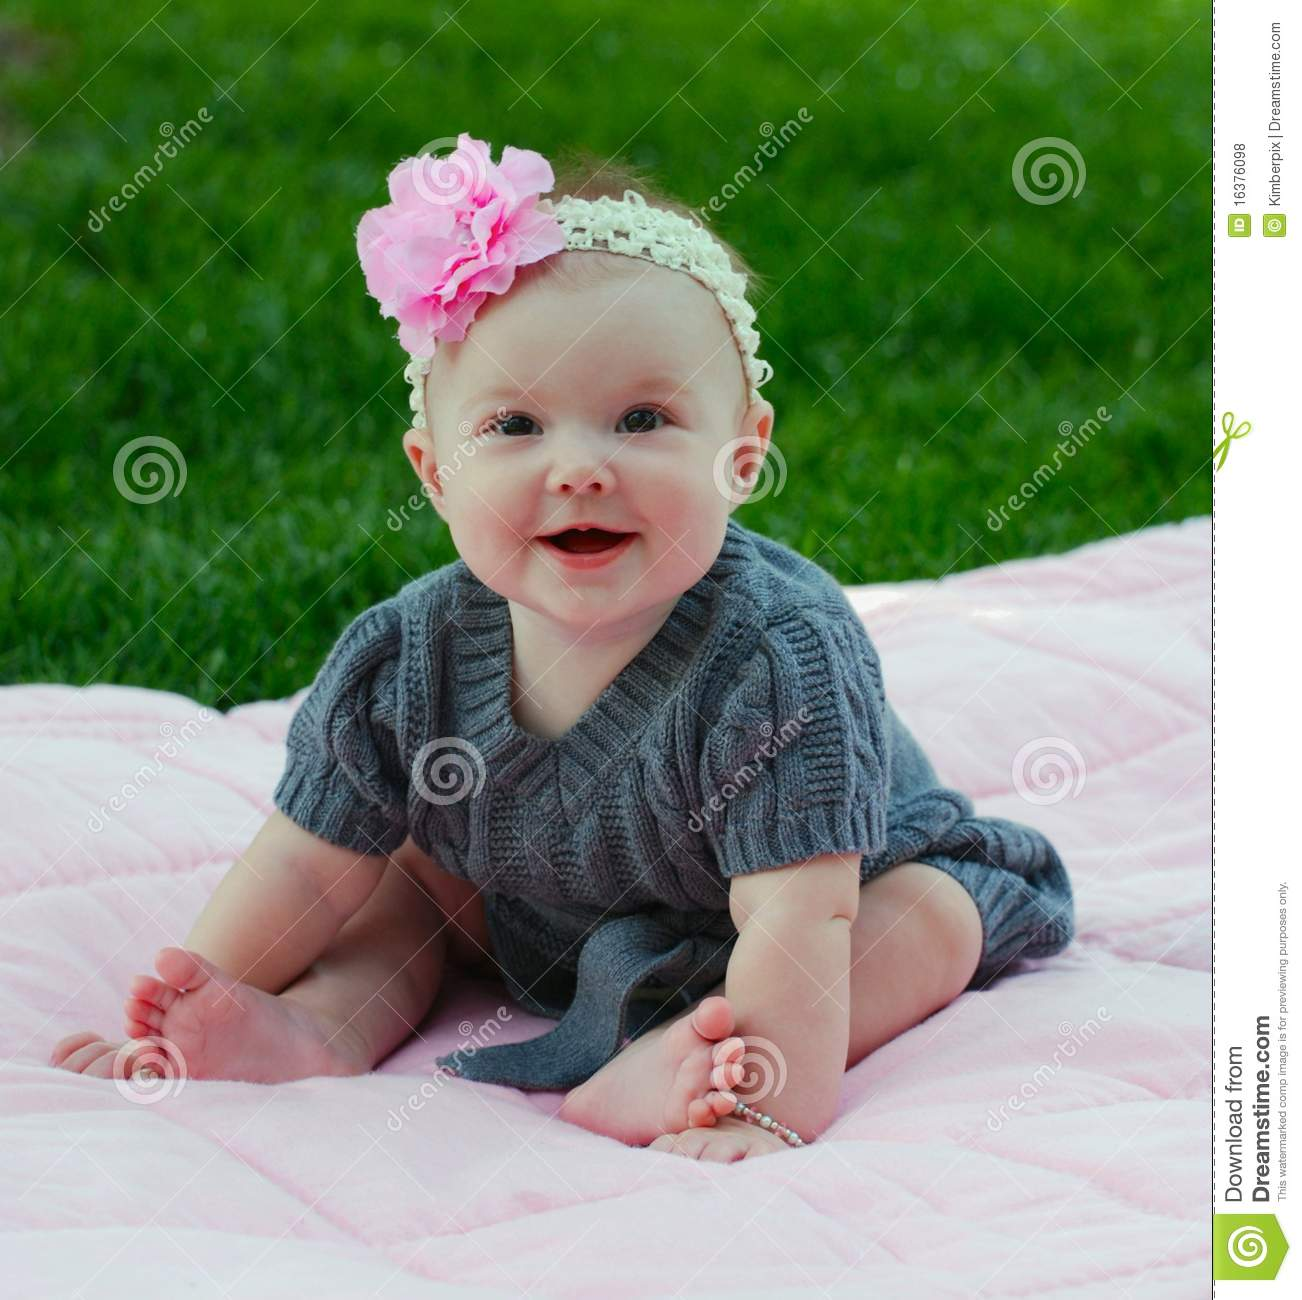 beautiful 5 month old baby girl stock photos - 1,658 images